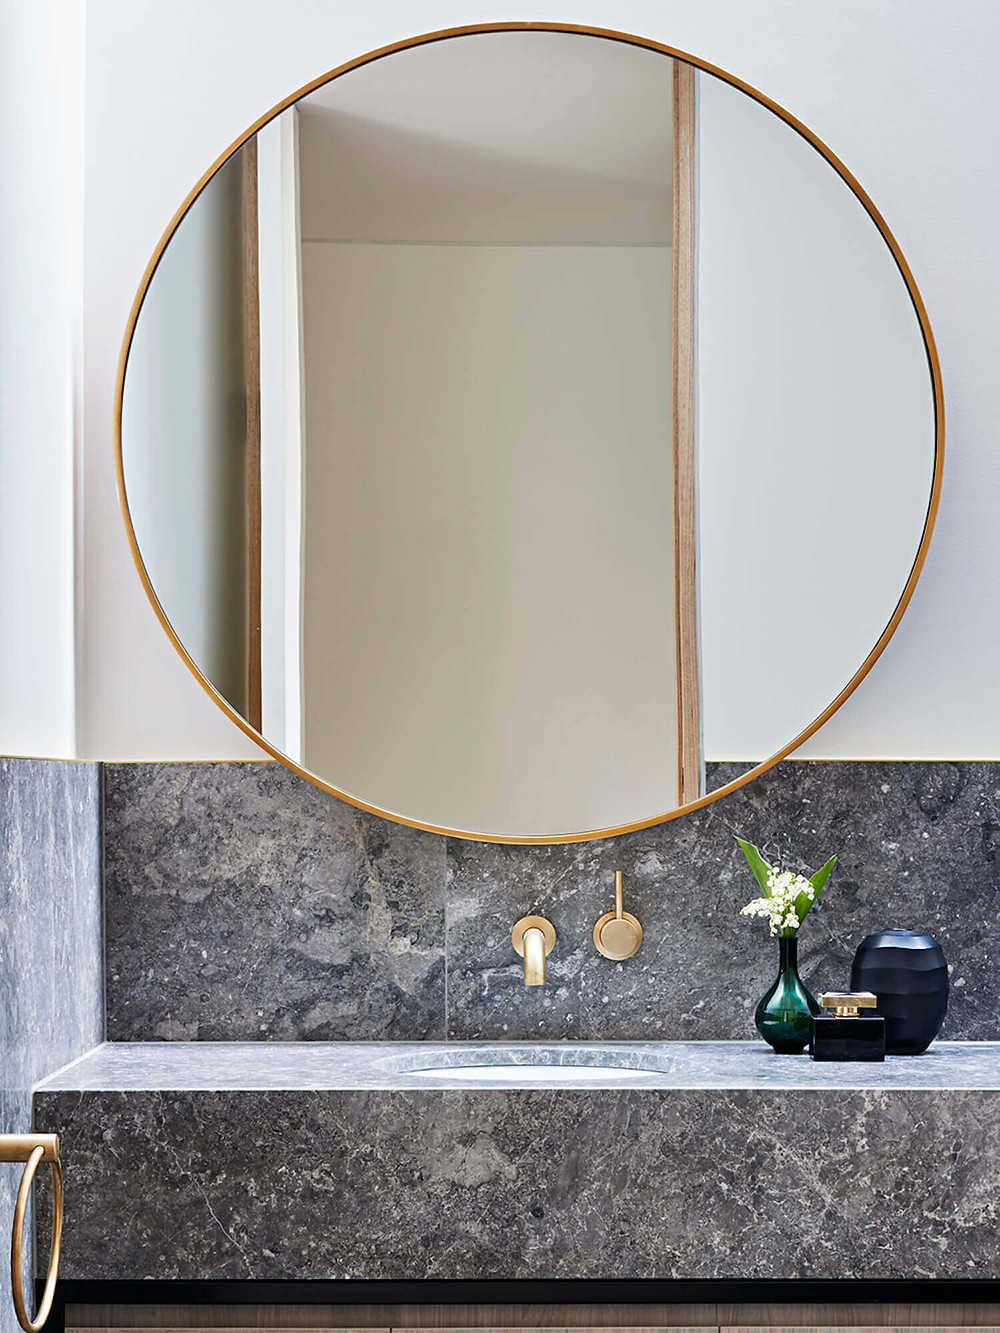 A large round brass mirror hangs above brass wall mounted taps and a large grey marble wall-hung vanity. A brass towel ring is mounted on the left adjacent wall and ceramic vases sit on the vanity to the right, one holding a flower.